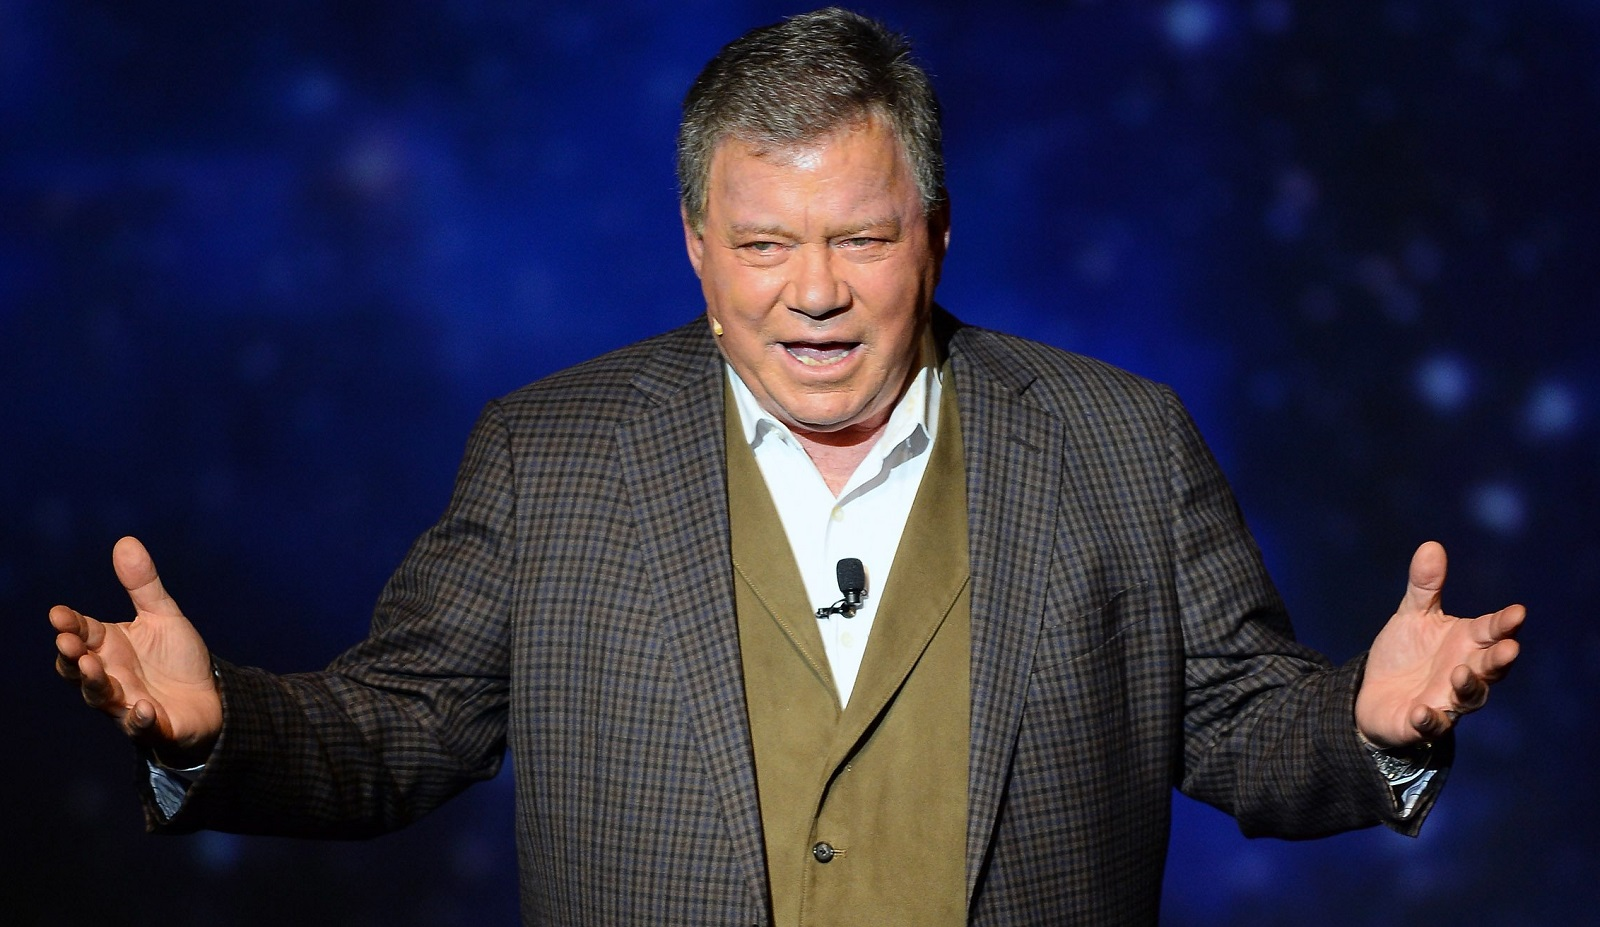 William Shatner will appear at Nickel City Con on May 20. (Getty Images)